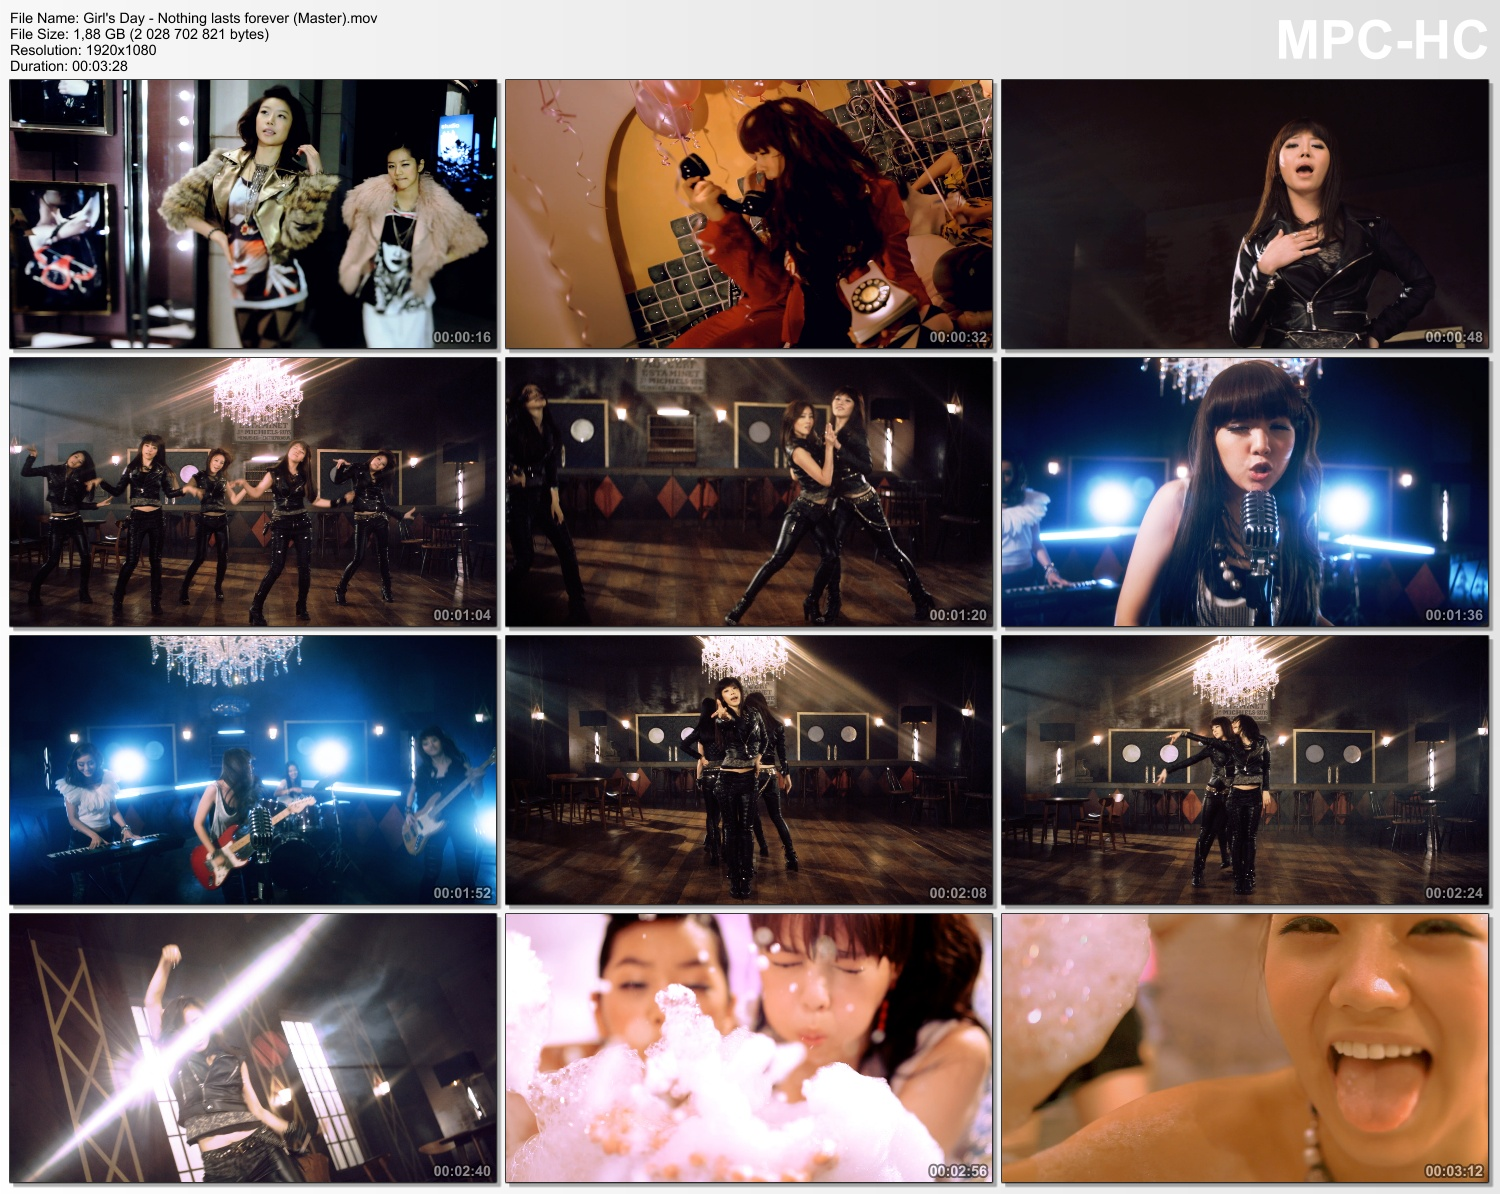 Girl's Day - Nothing lasts forever (Master).mov_thumbs.jpg